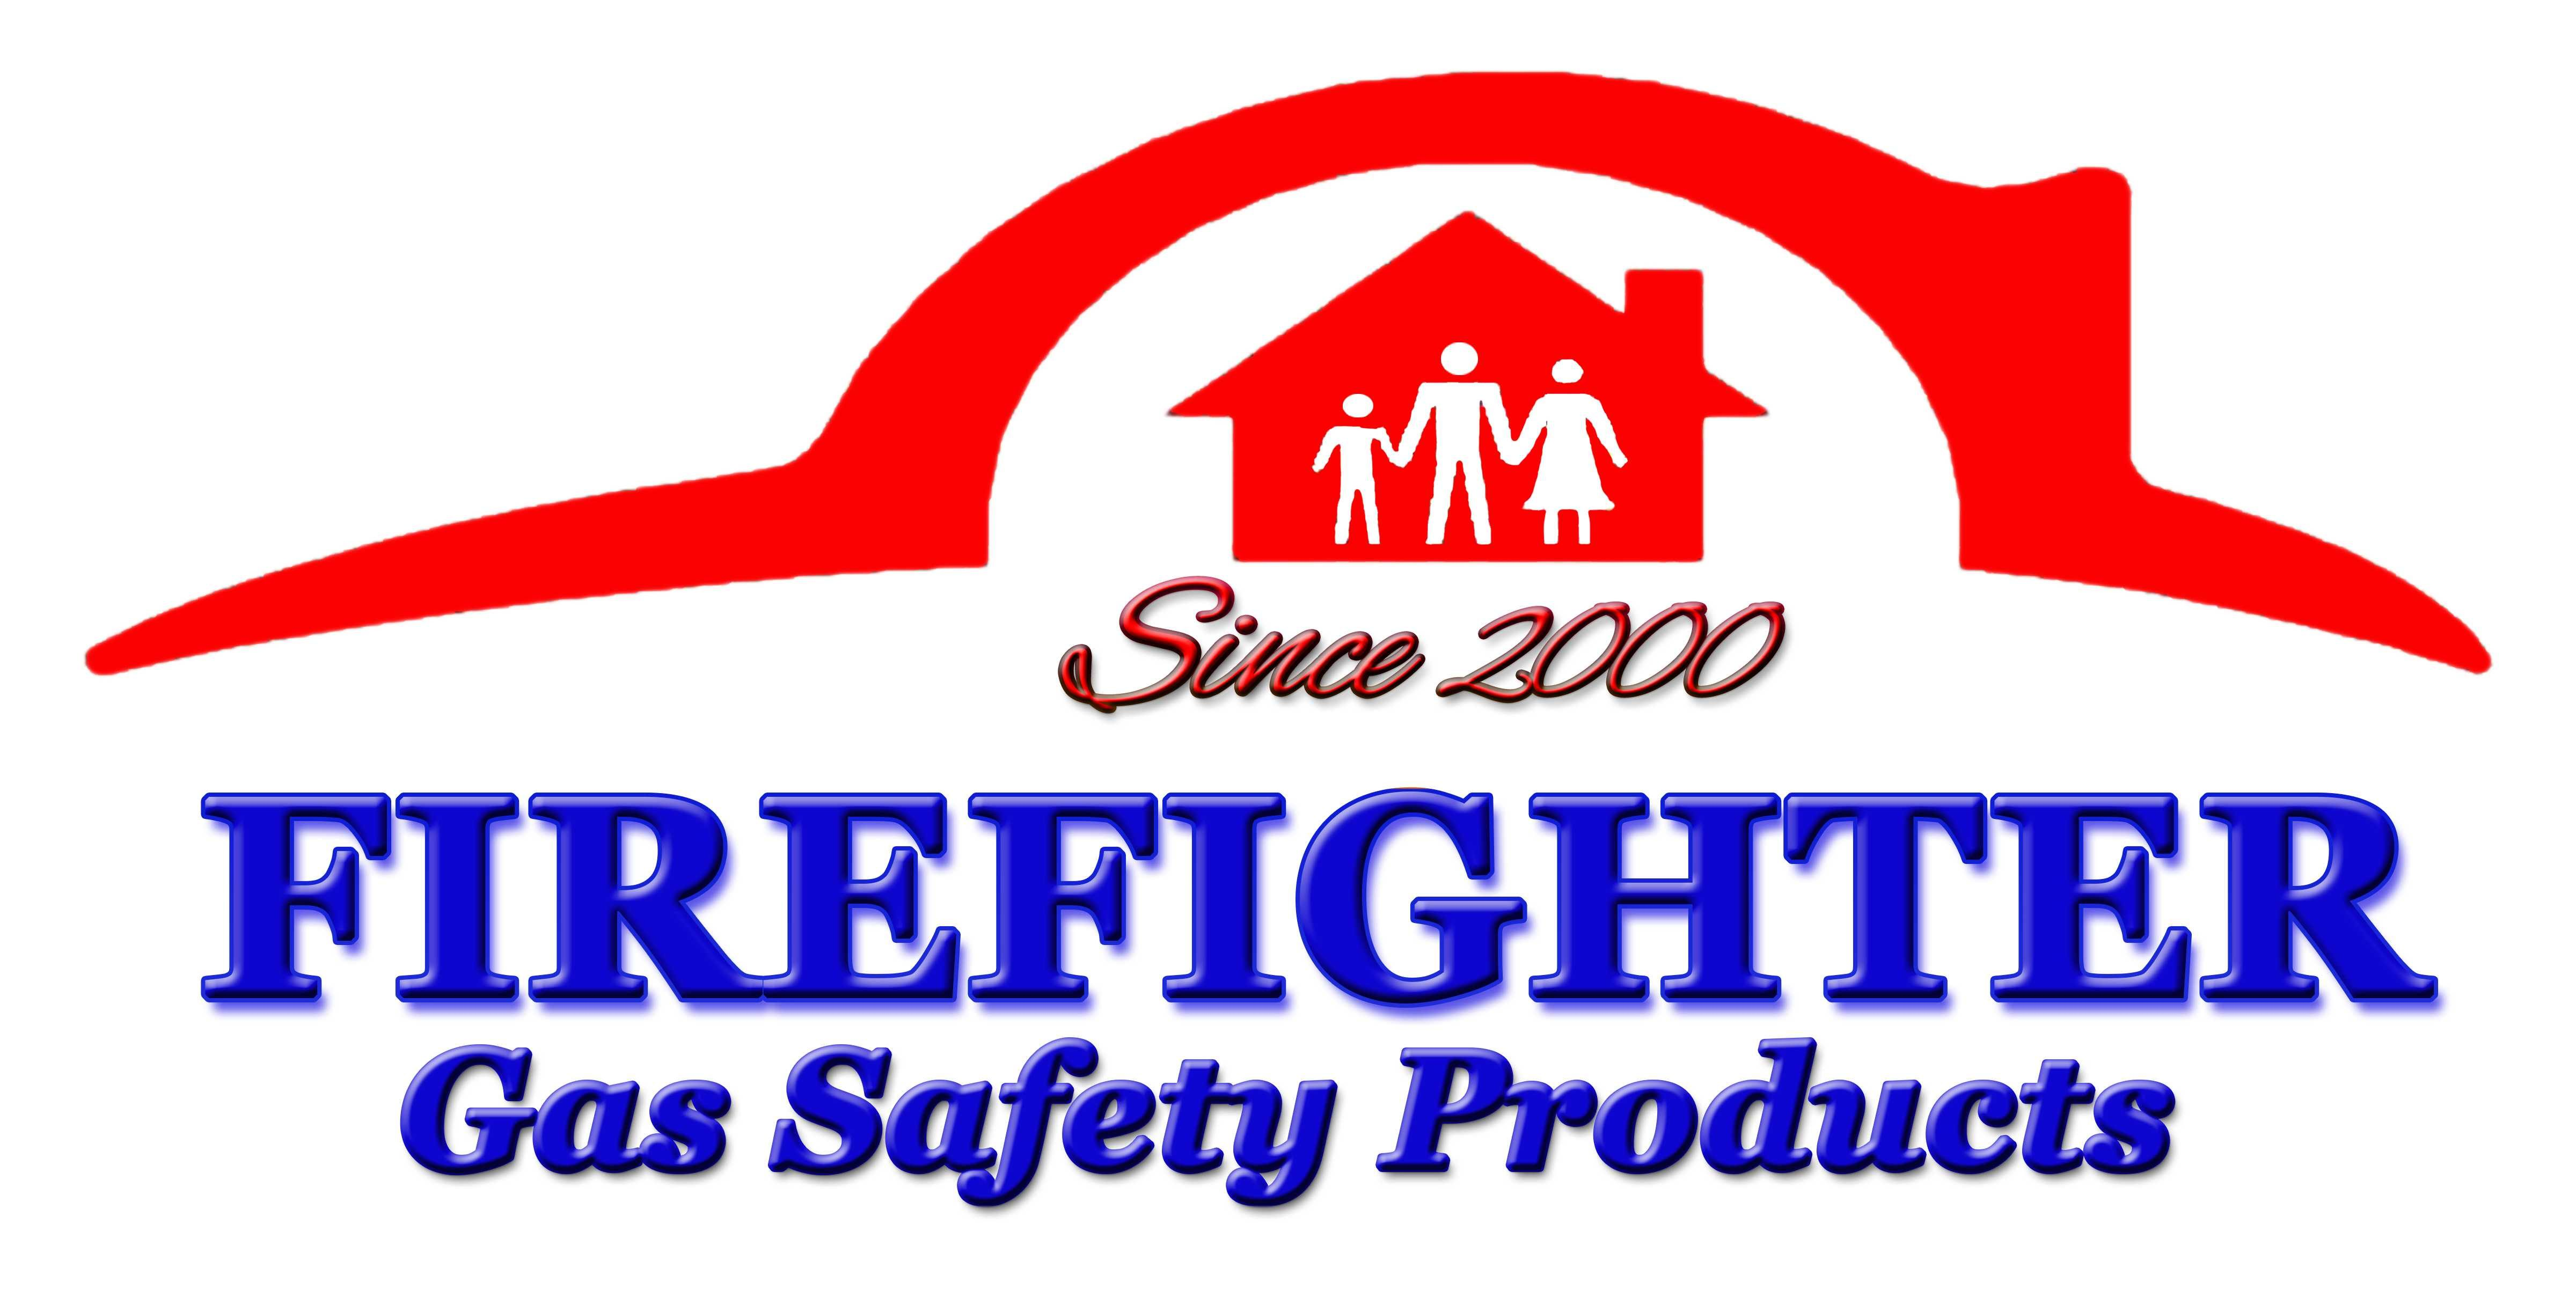 FireFighter Gas Safety Products